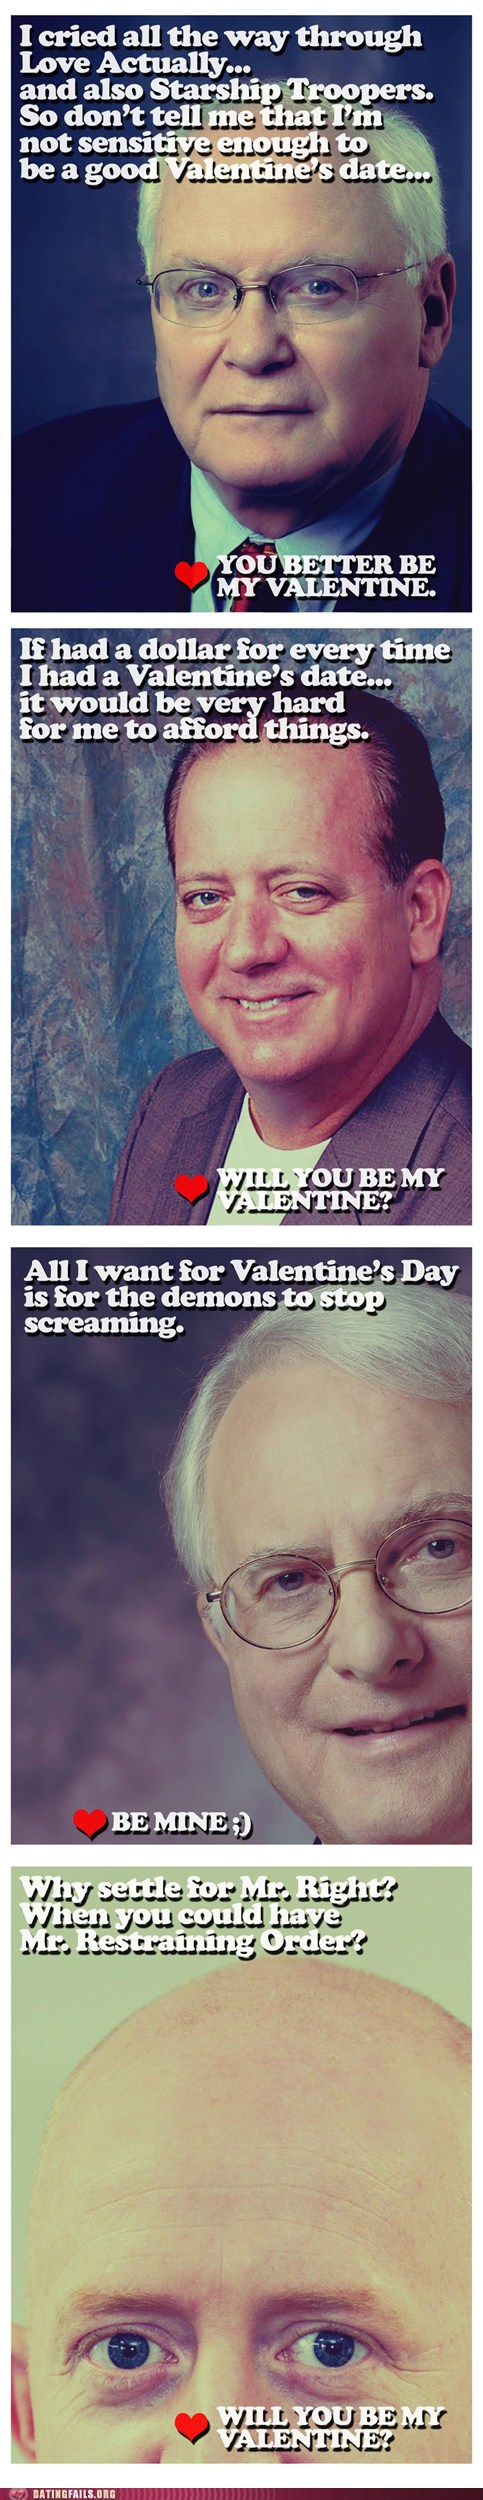 epic-fail-photos-dating-fails-valentines-from-the-guy-who-watches-you-sleep.jpg (296 KB)